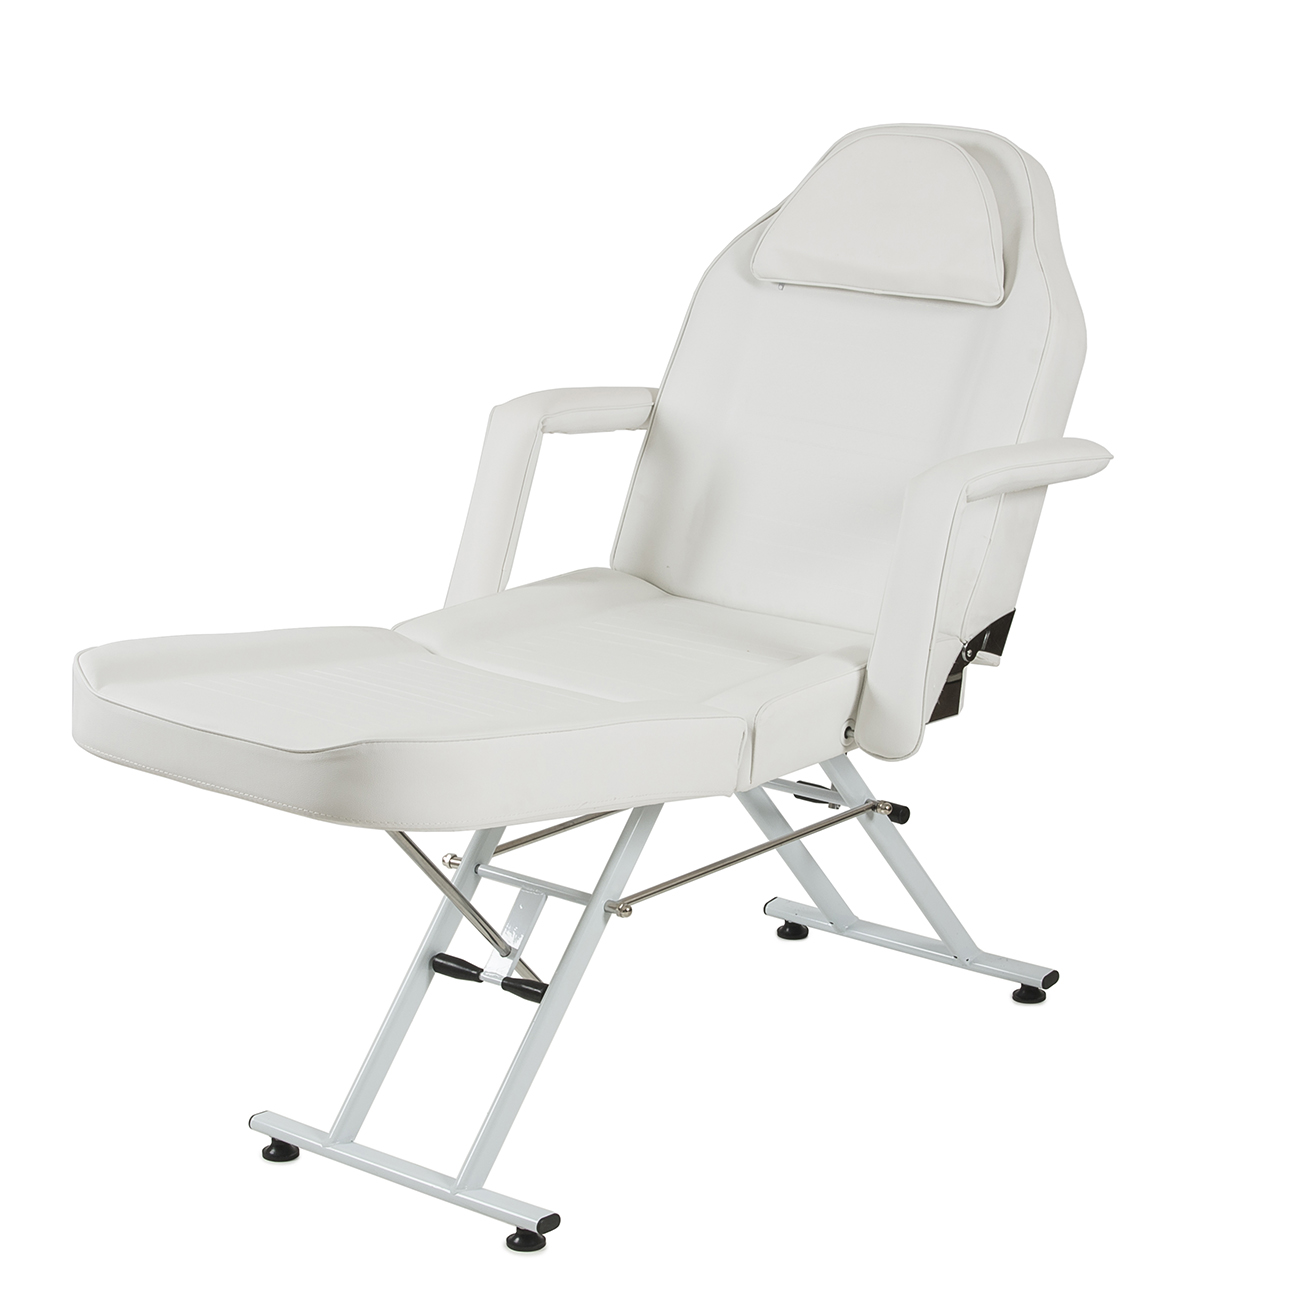 White Massage Facial Bed Adjustable Table Chair Beauty Spa Salon Tattoo  Beauty